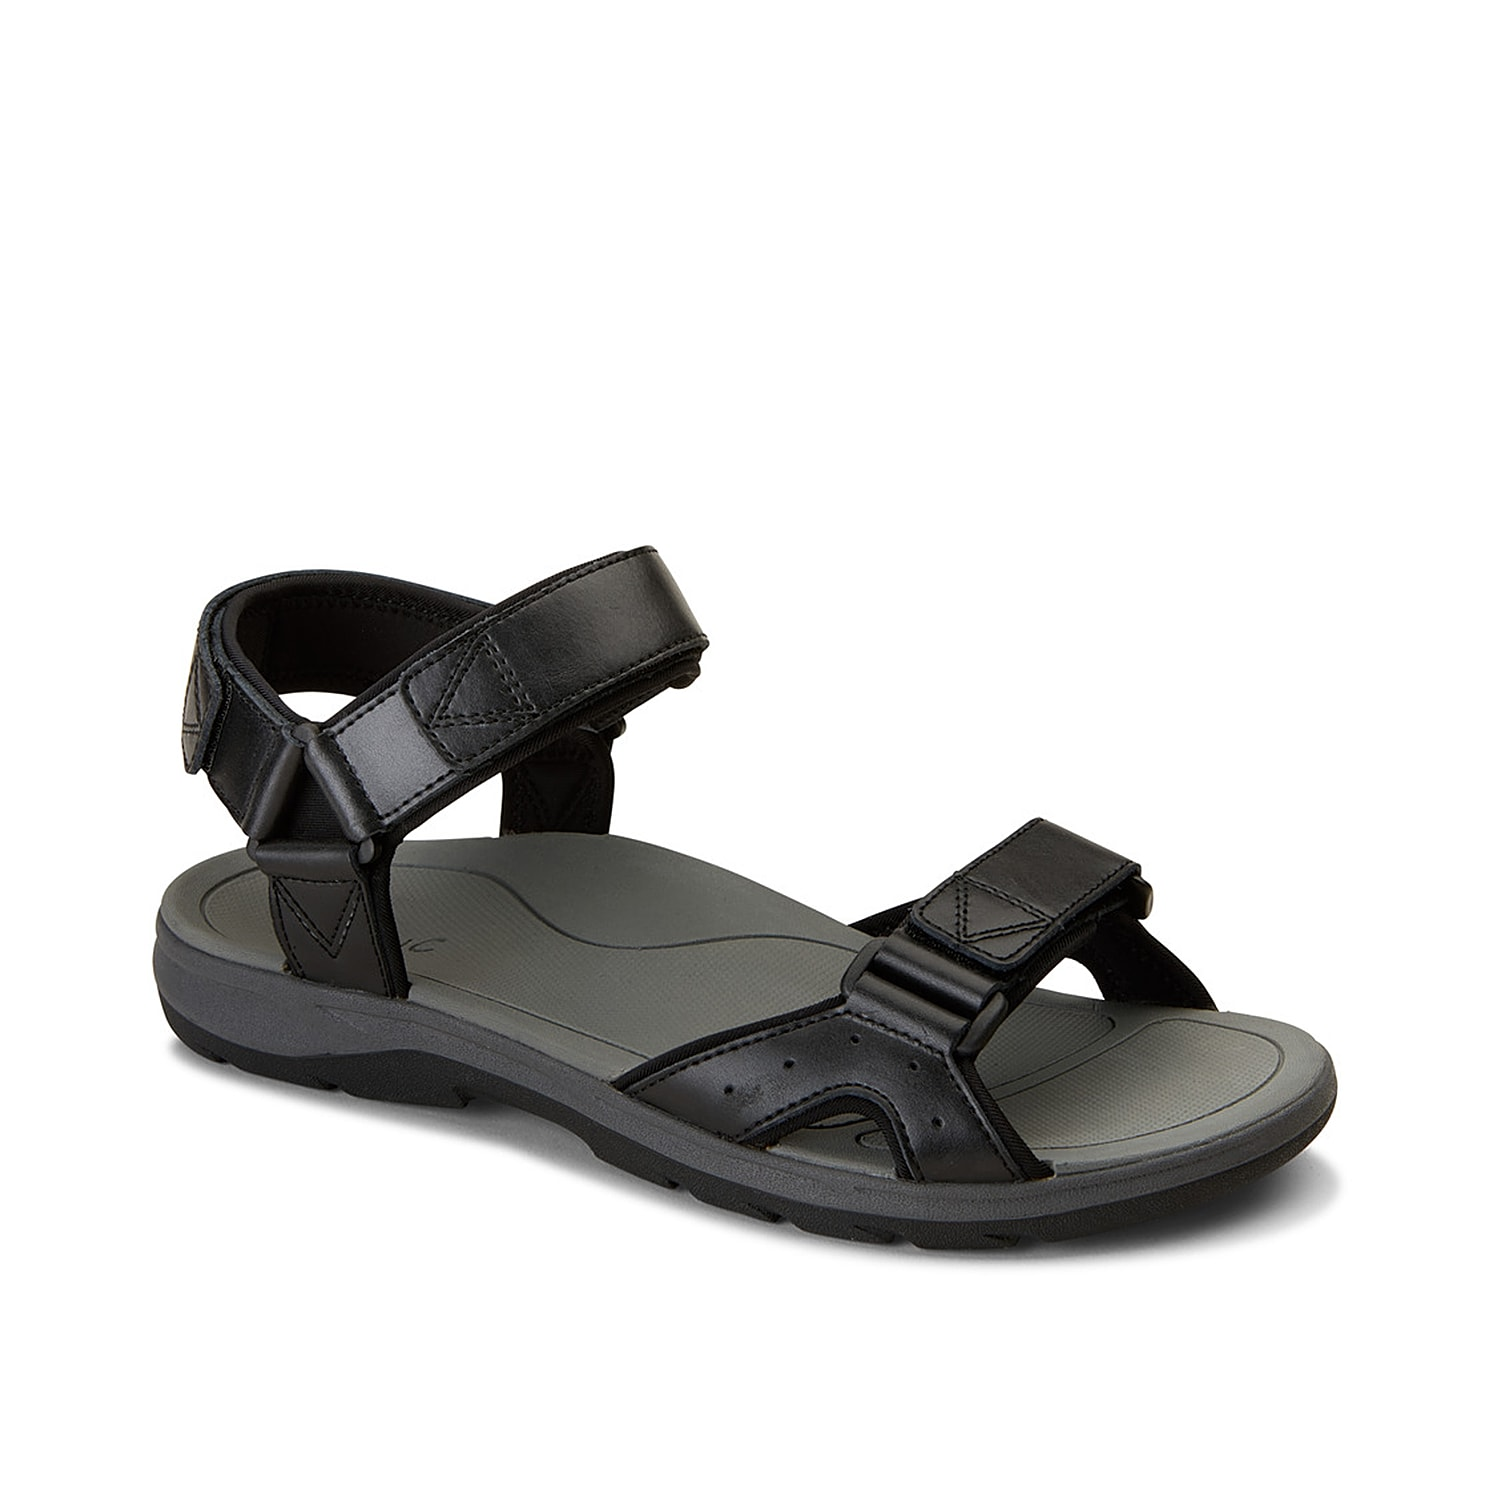 Get ready for outdoor adventures with the Leo river sandal from Vionic. Along with a classic design, this sandal features contoured EVA footbed with podiatrist-designed orthotic technology and durable rubber traction sole.